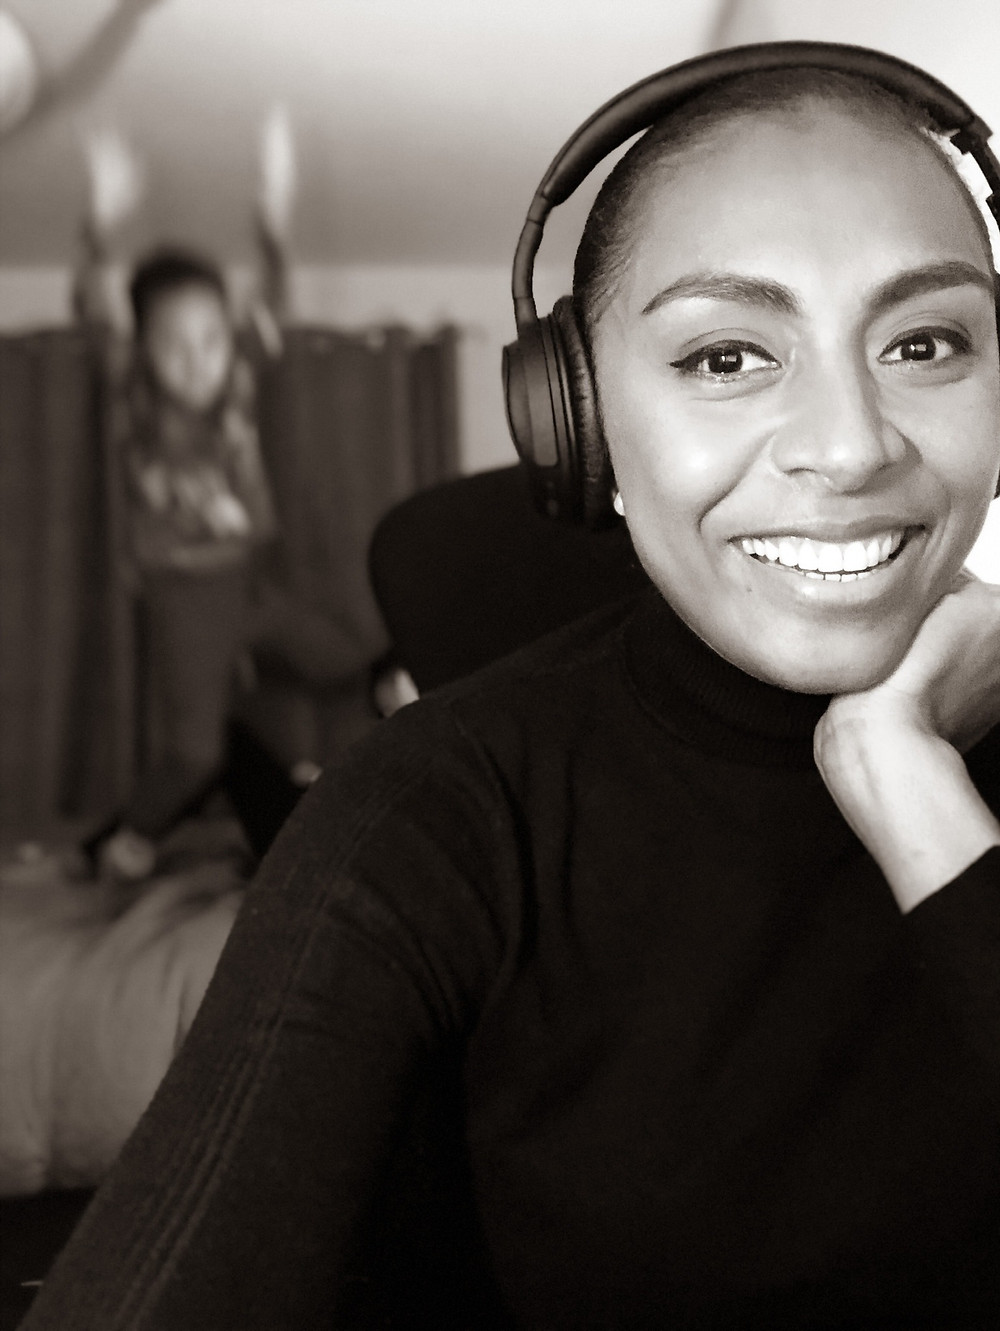 Isabella is at the forefront of the image and smiling into the camera, she is wearing a black turtleneck top and has her resting on the palm of her left hand. She also has black headphones over her head and on her ears. and the silhouette of her son is jumping in the air, in the background. The photogrpah is in black and white.